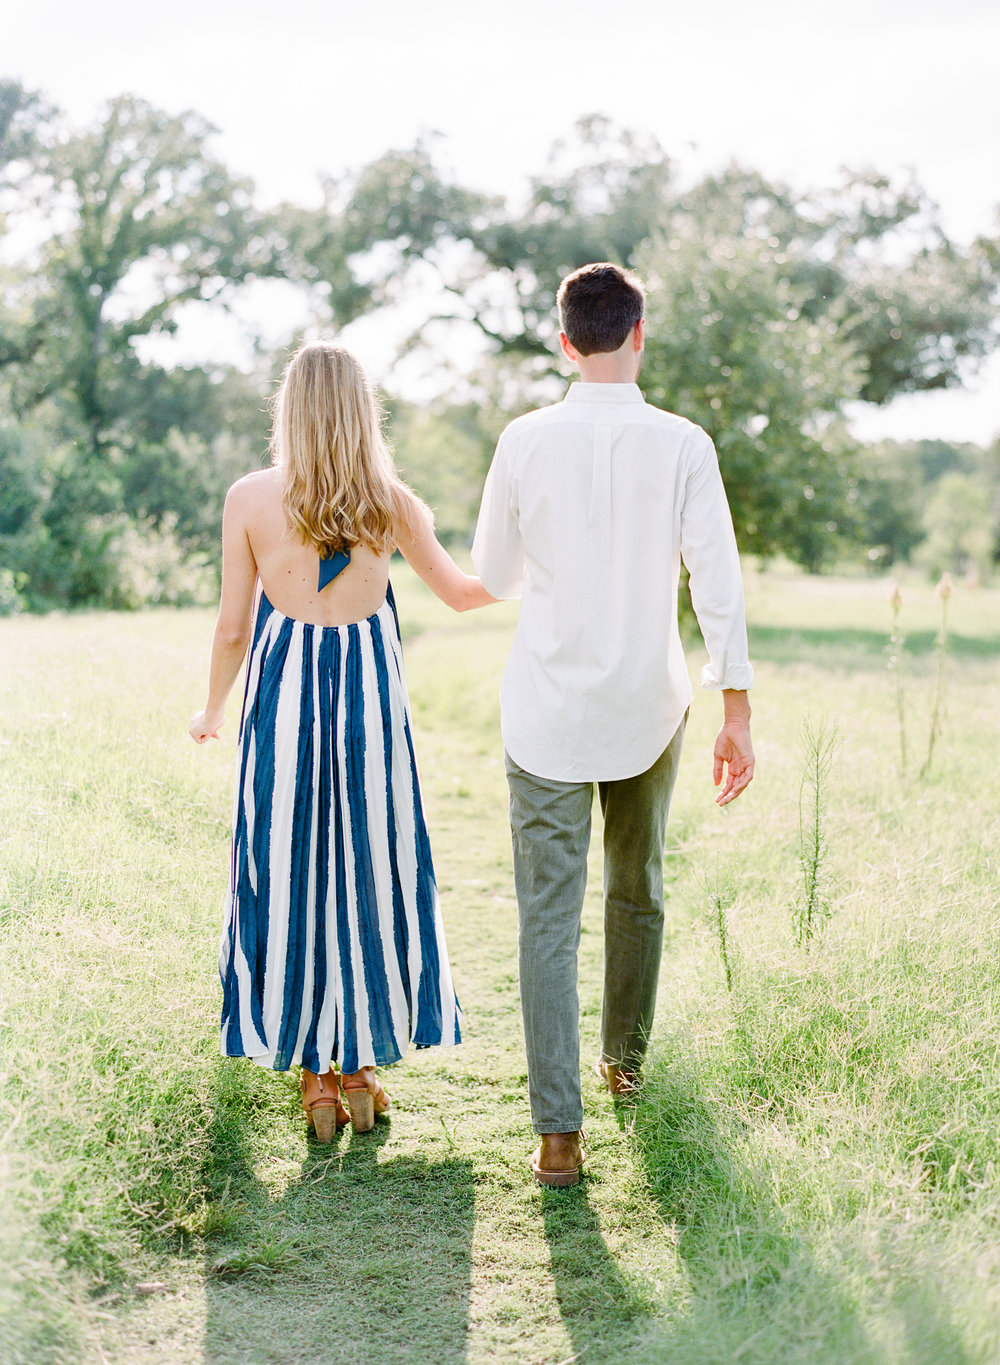 Engagement Session Outfits-169.jpg